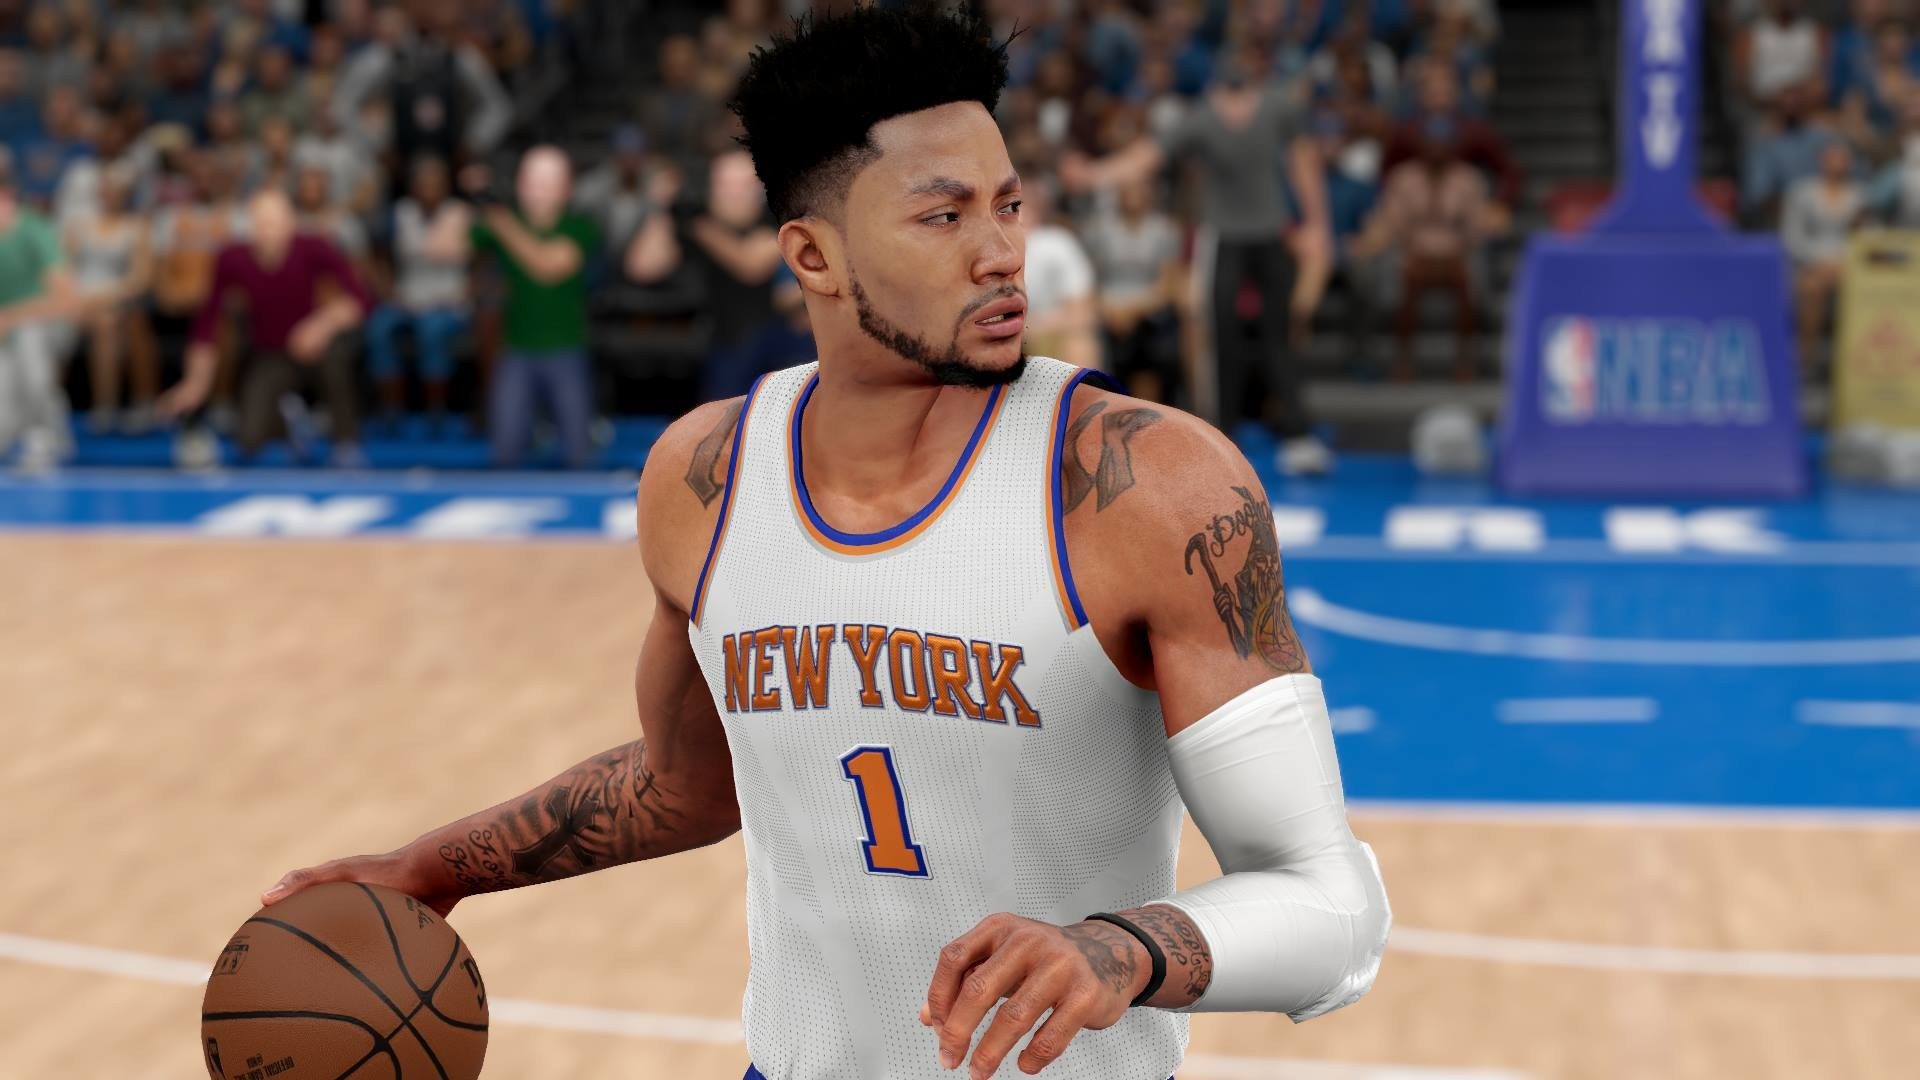 fb3ceebe149 Derrick Rose Traded to the Knicks in a Blockbuster Deal - Operation ...